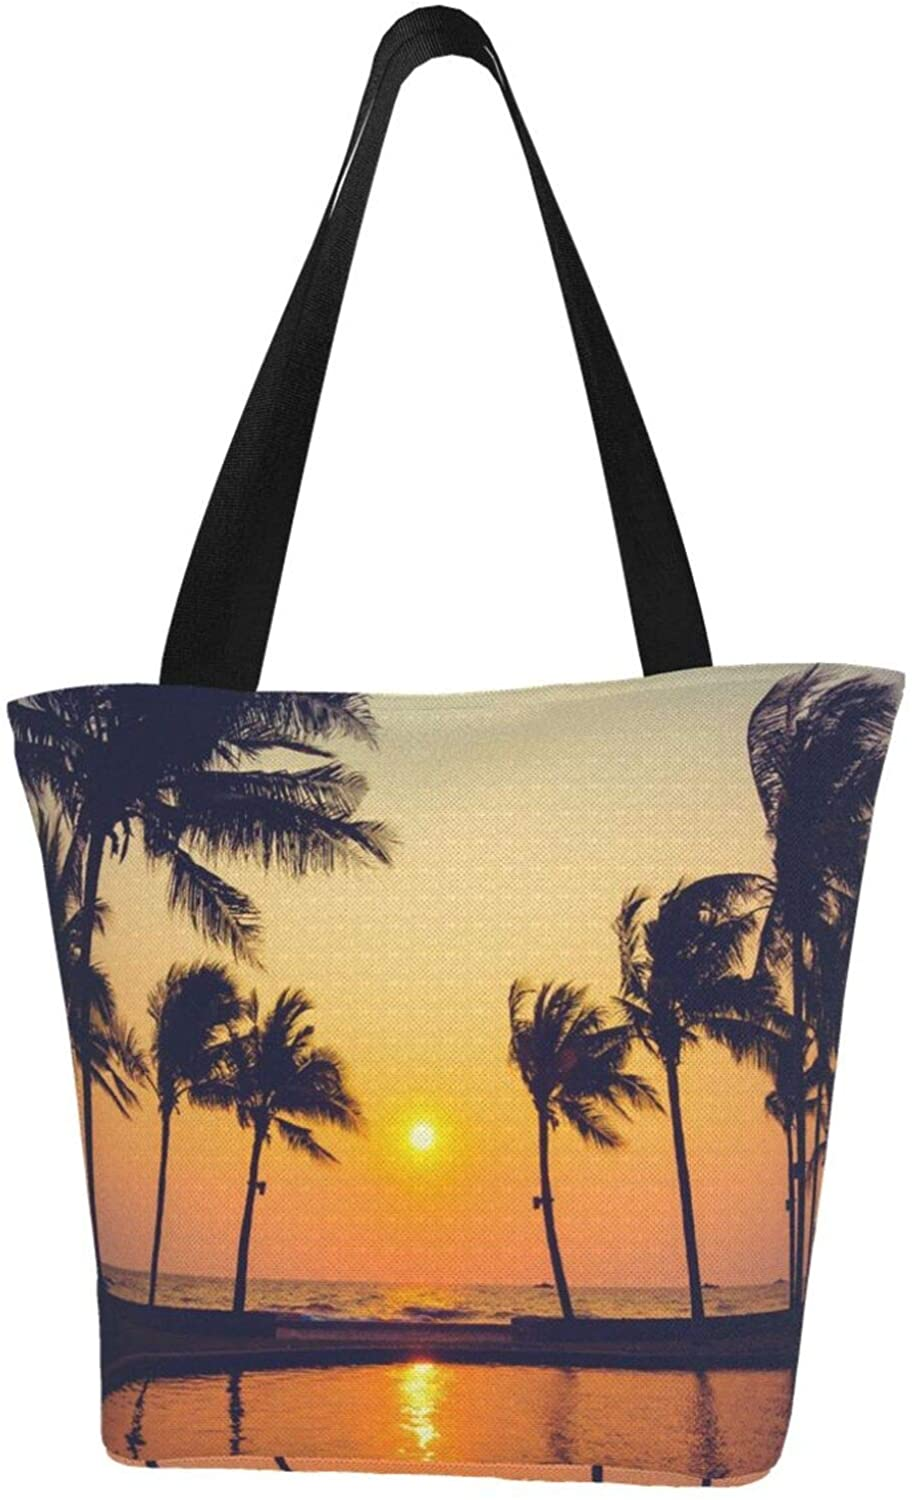 Reusable Funny Silhouette Palm Tree Canvas Tote Bag ,Durable Canvas Tote Bag with Interior Pocket ,Washable Foldable Canvas Tote Bag for Beach,Shipping,Groceries,Books